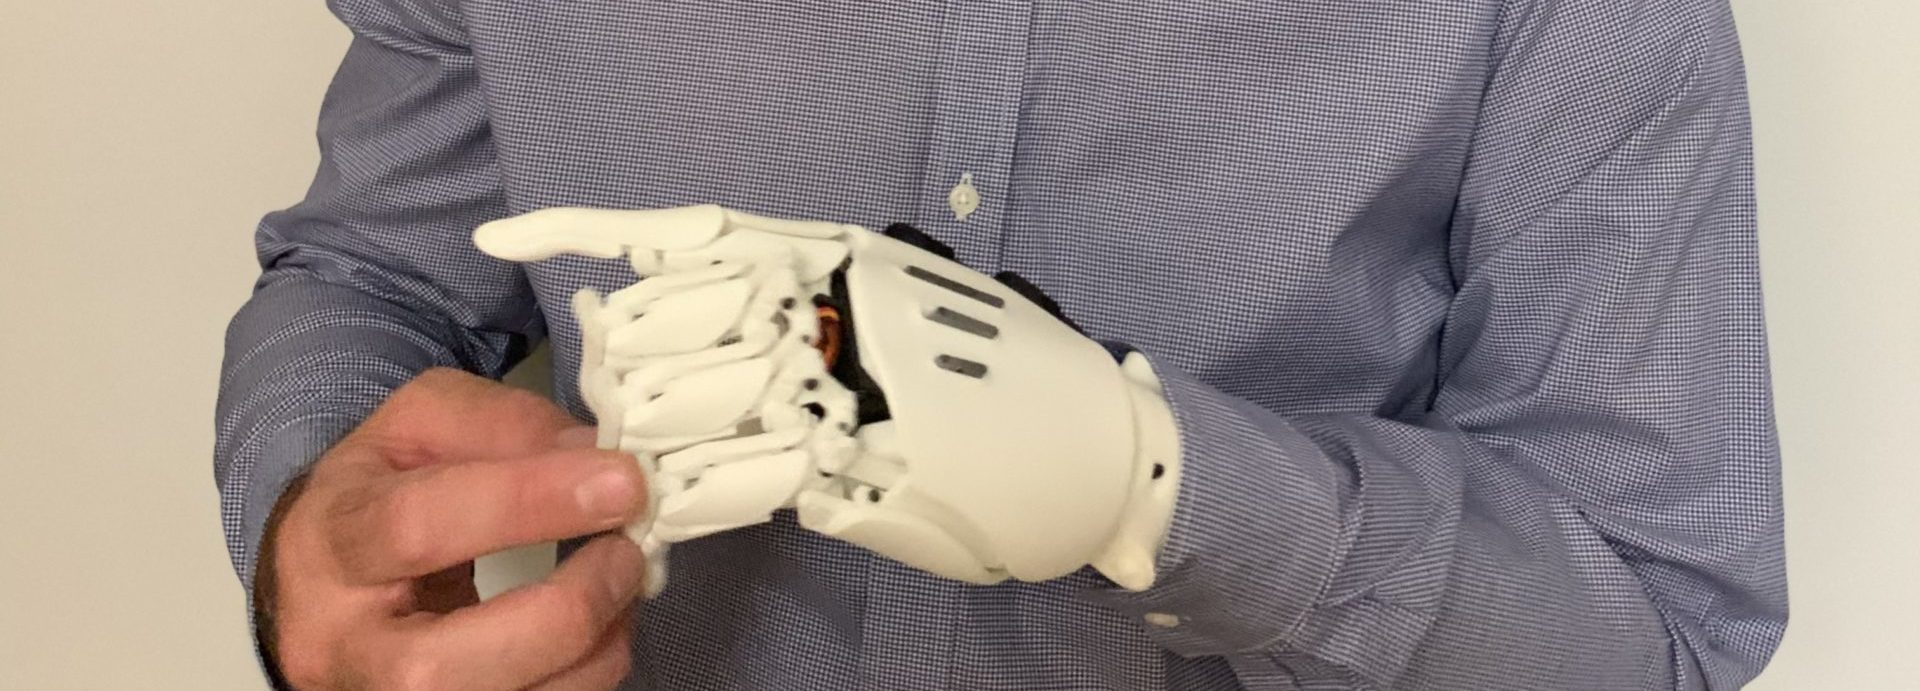 bionic arms close-up